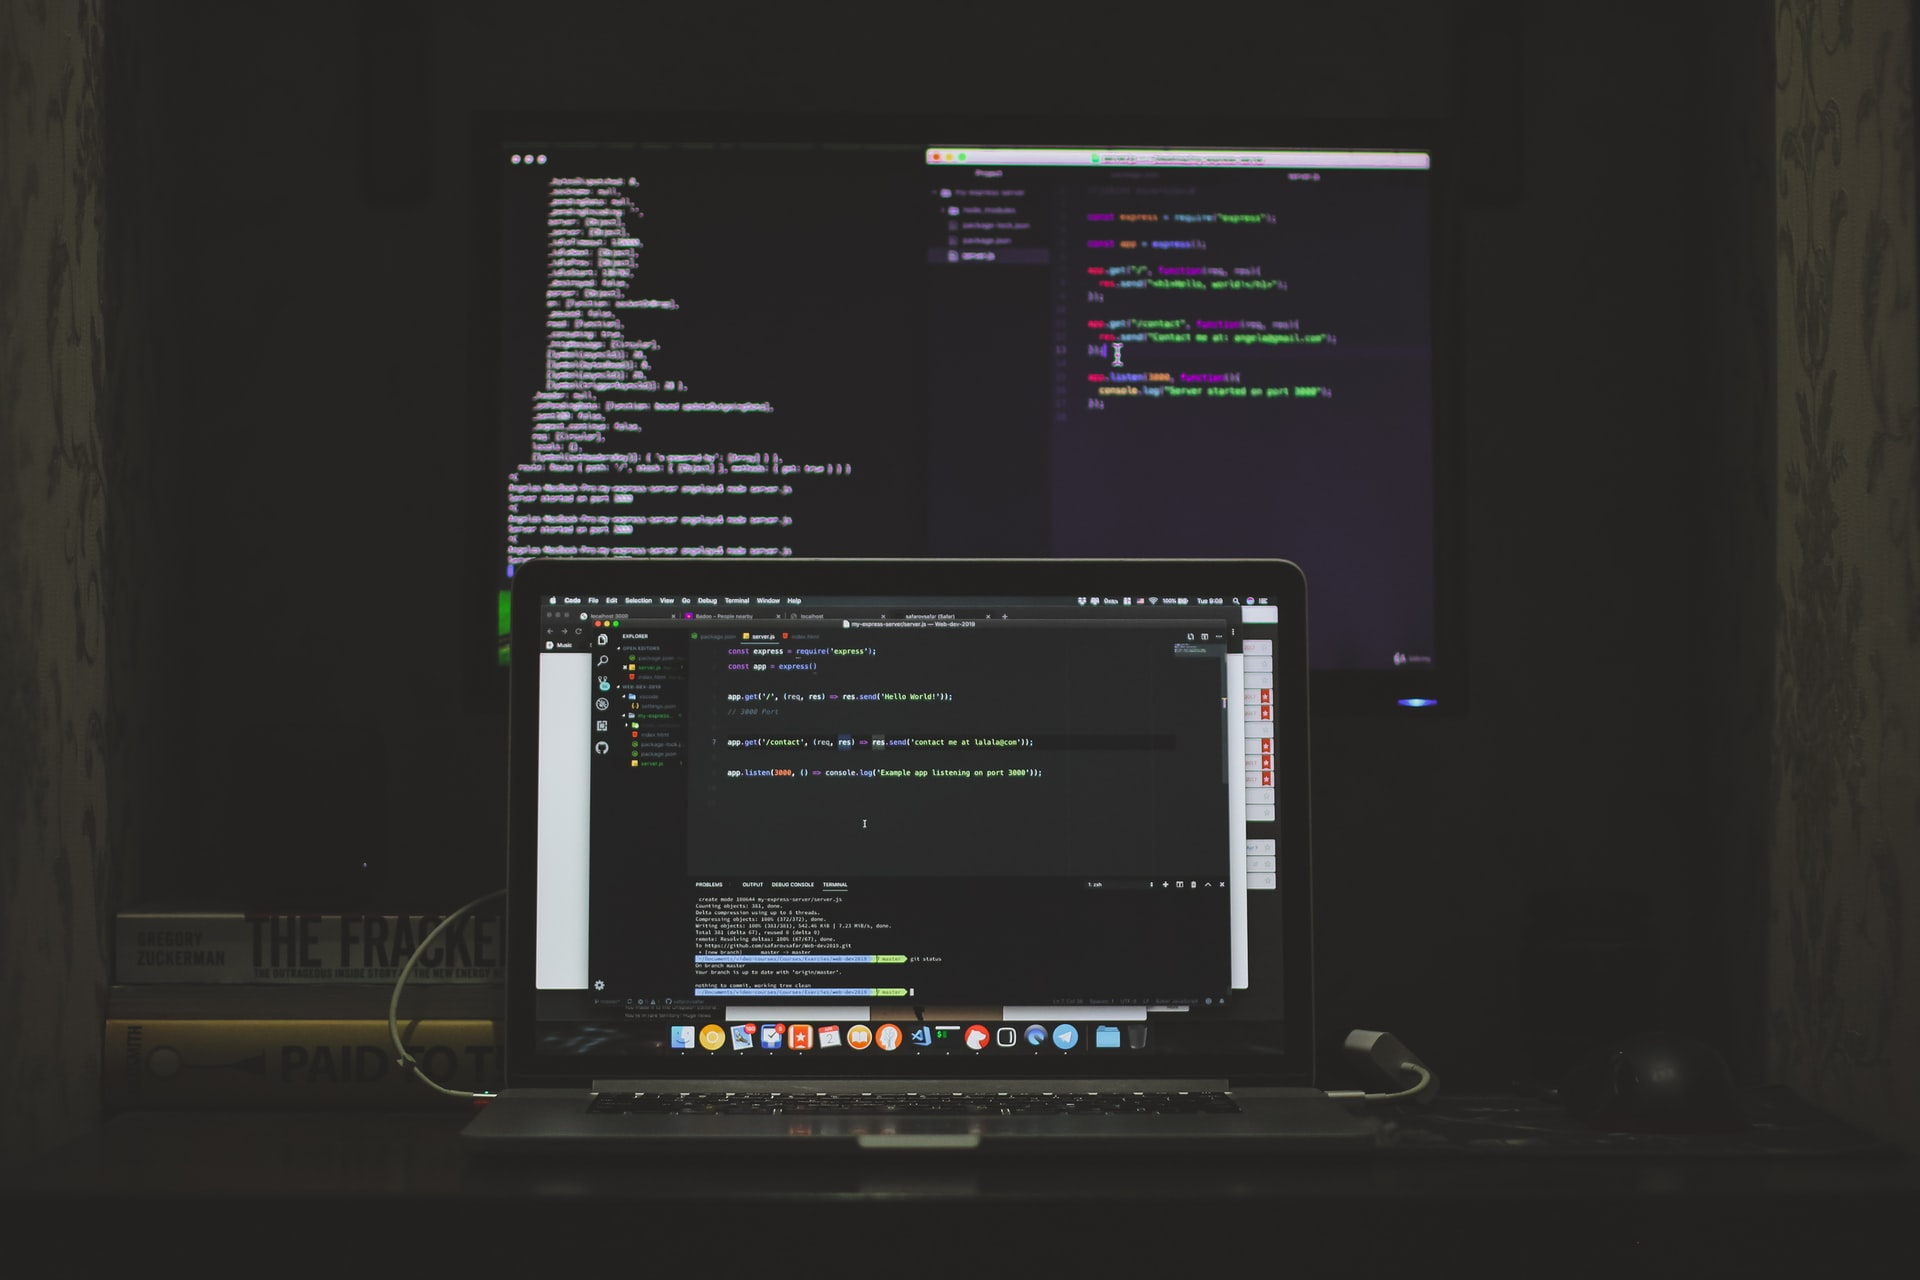 Cybersecurity Research Topics